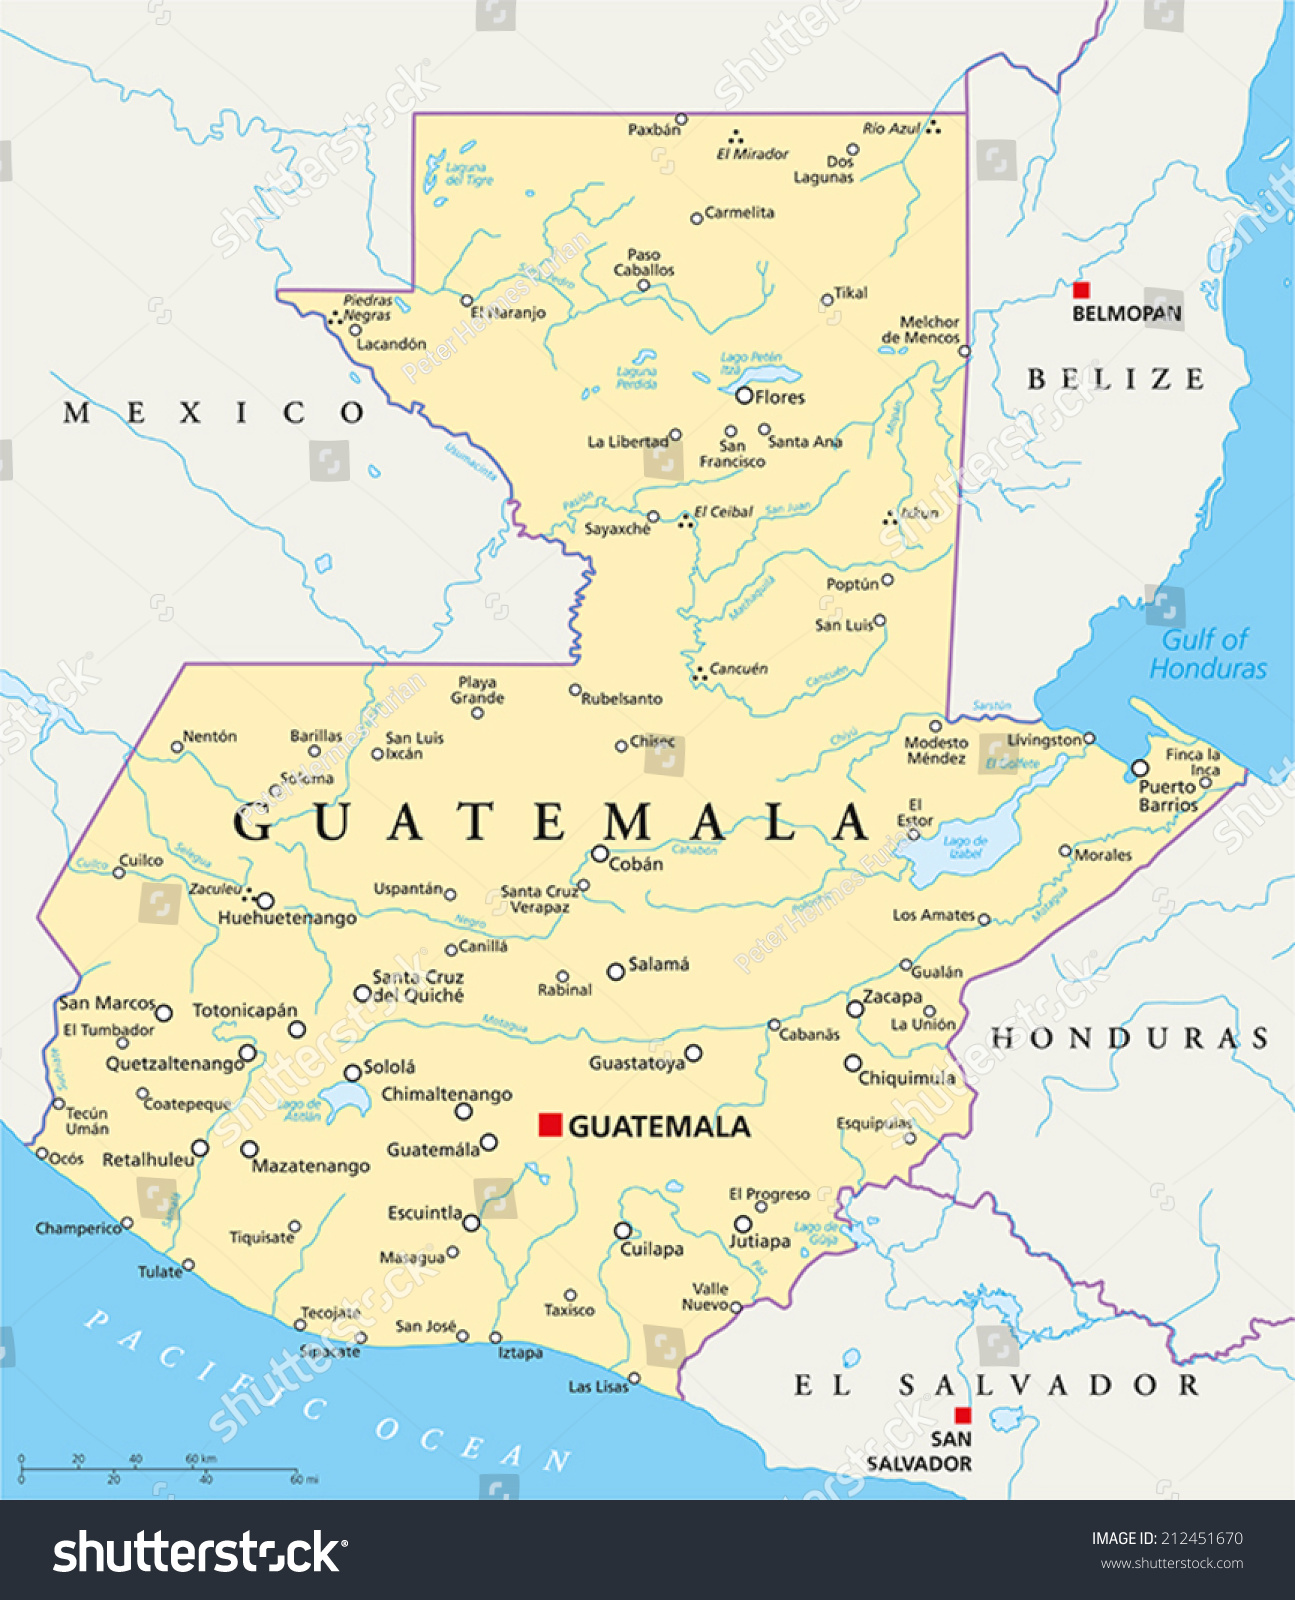 Guatemala Political Map Capital Guatemala City Stock Vector - Map of united states with rivers labeled